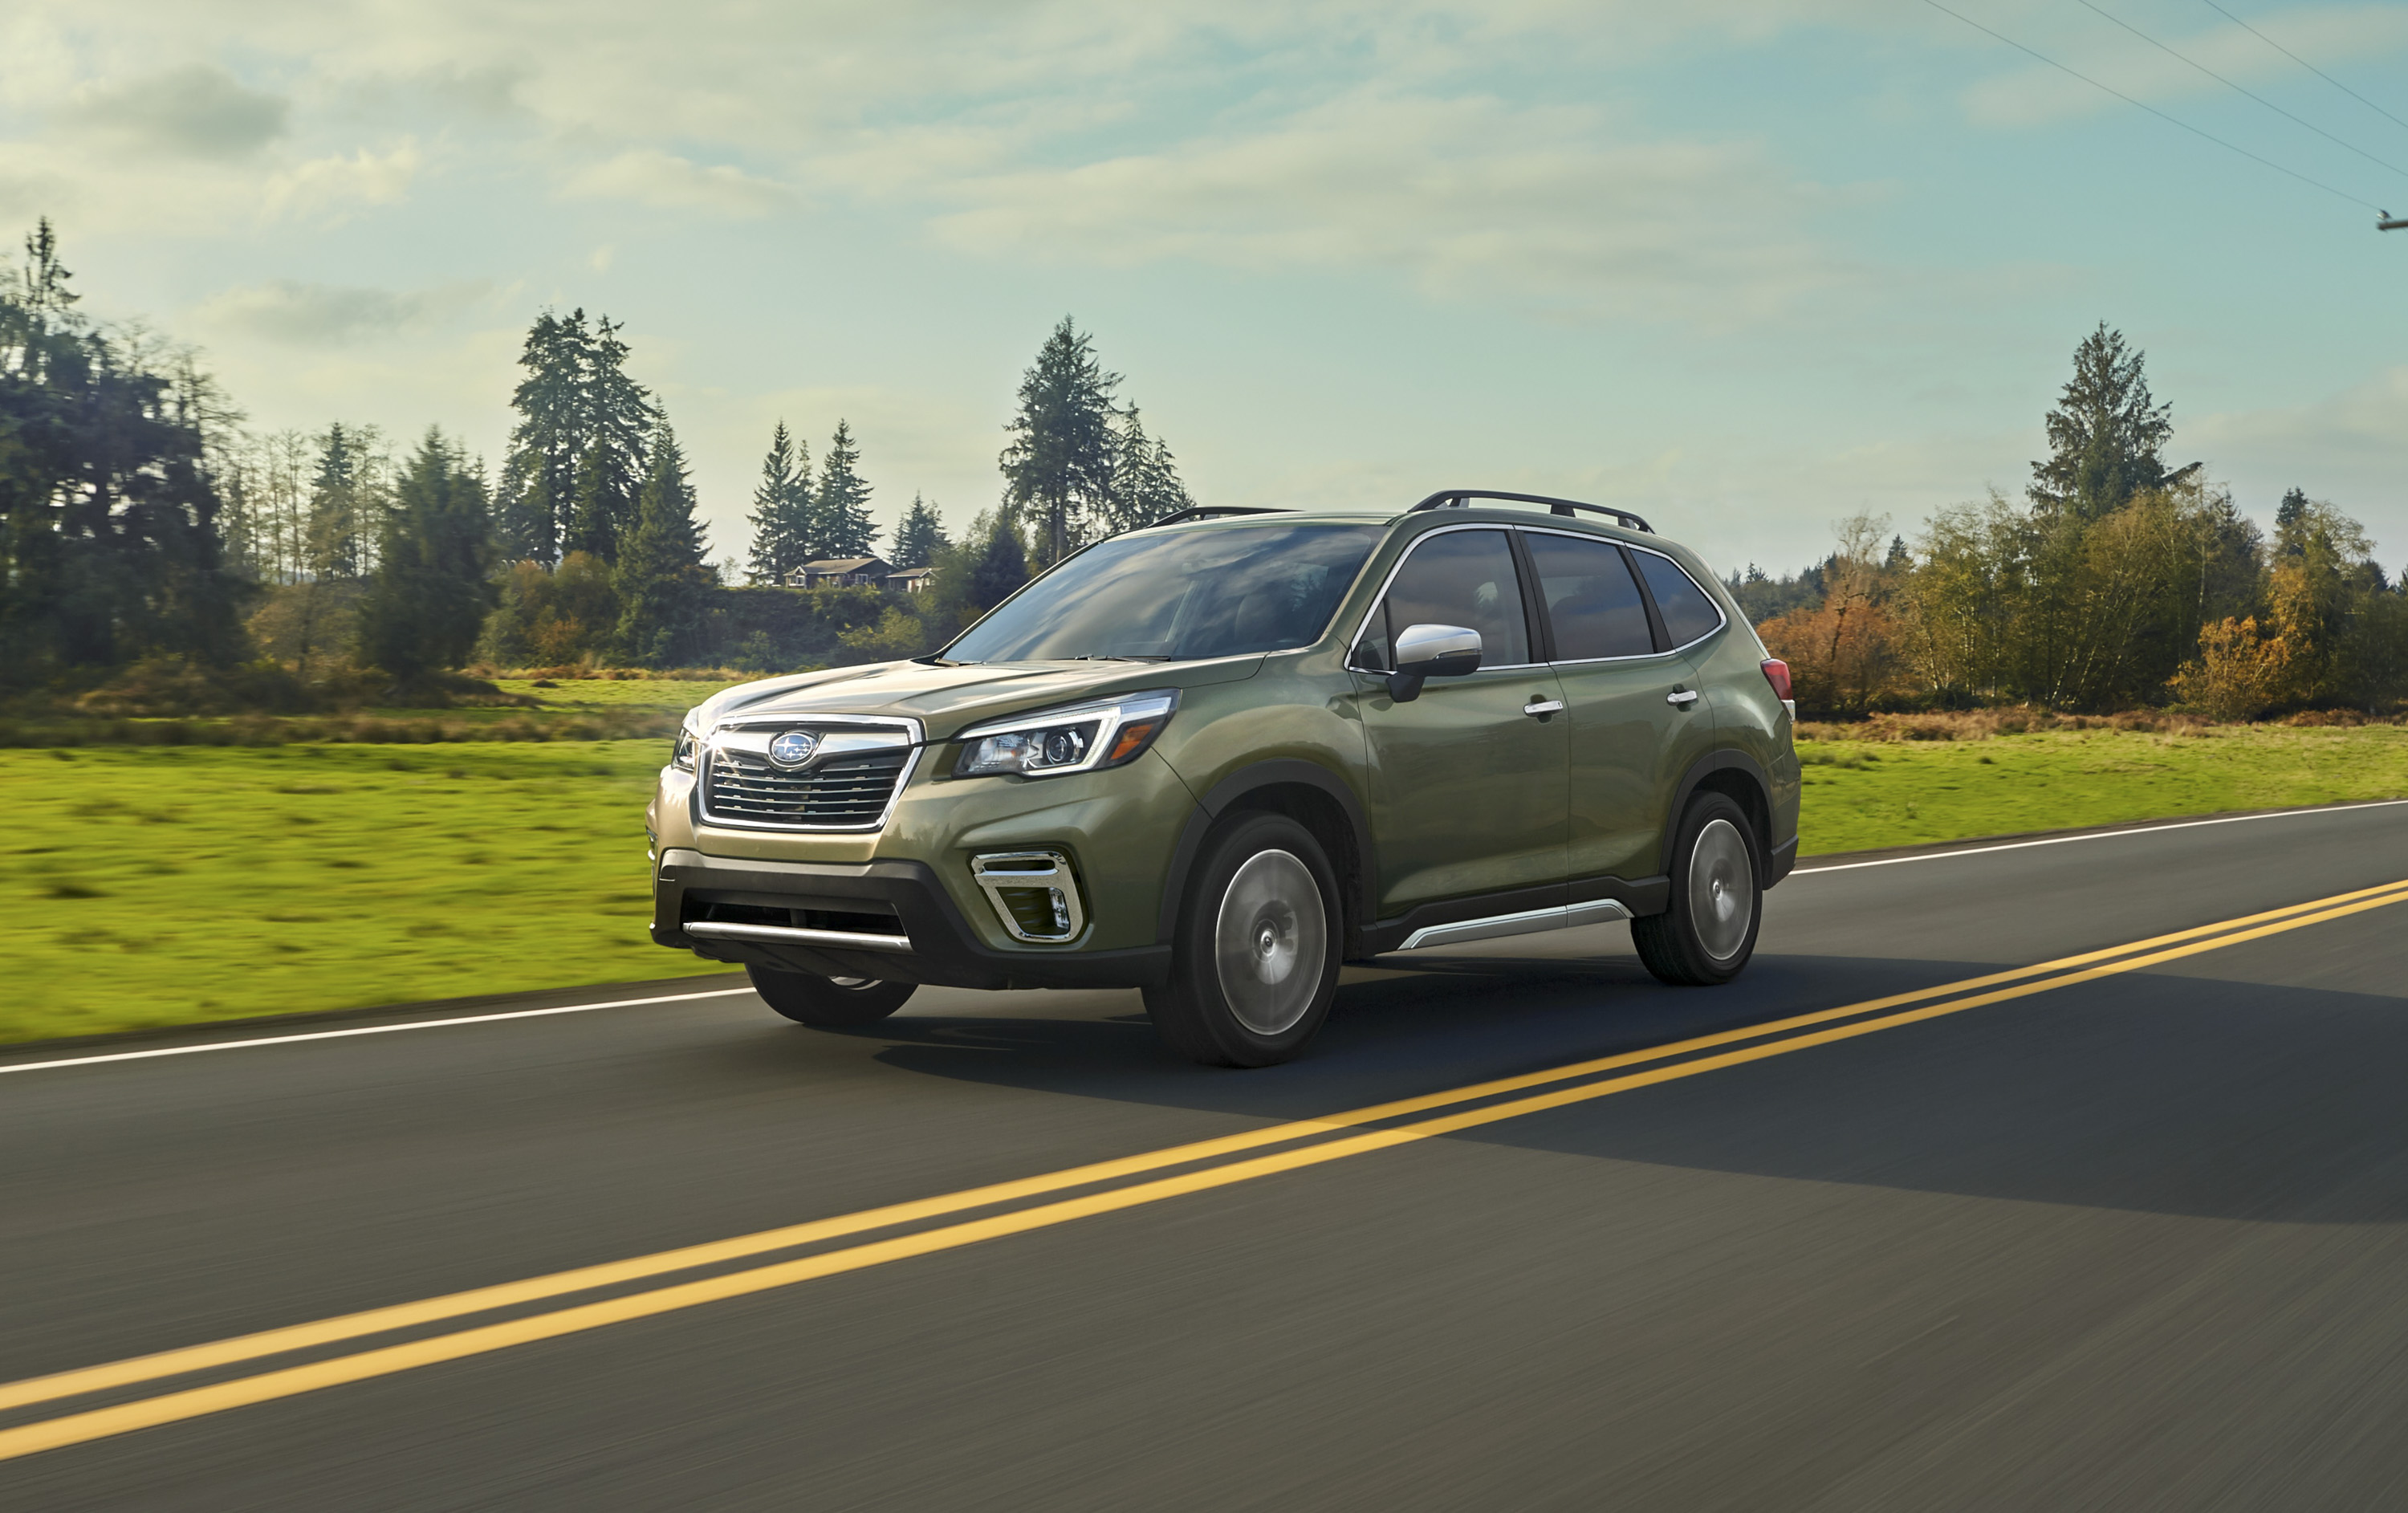 2019 Subaru Forester Adds Size And Safety, Scraps Turbo And